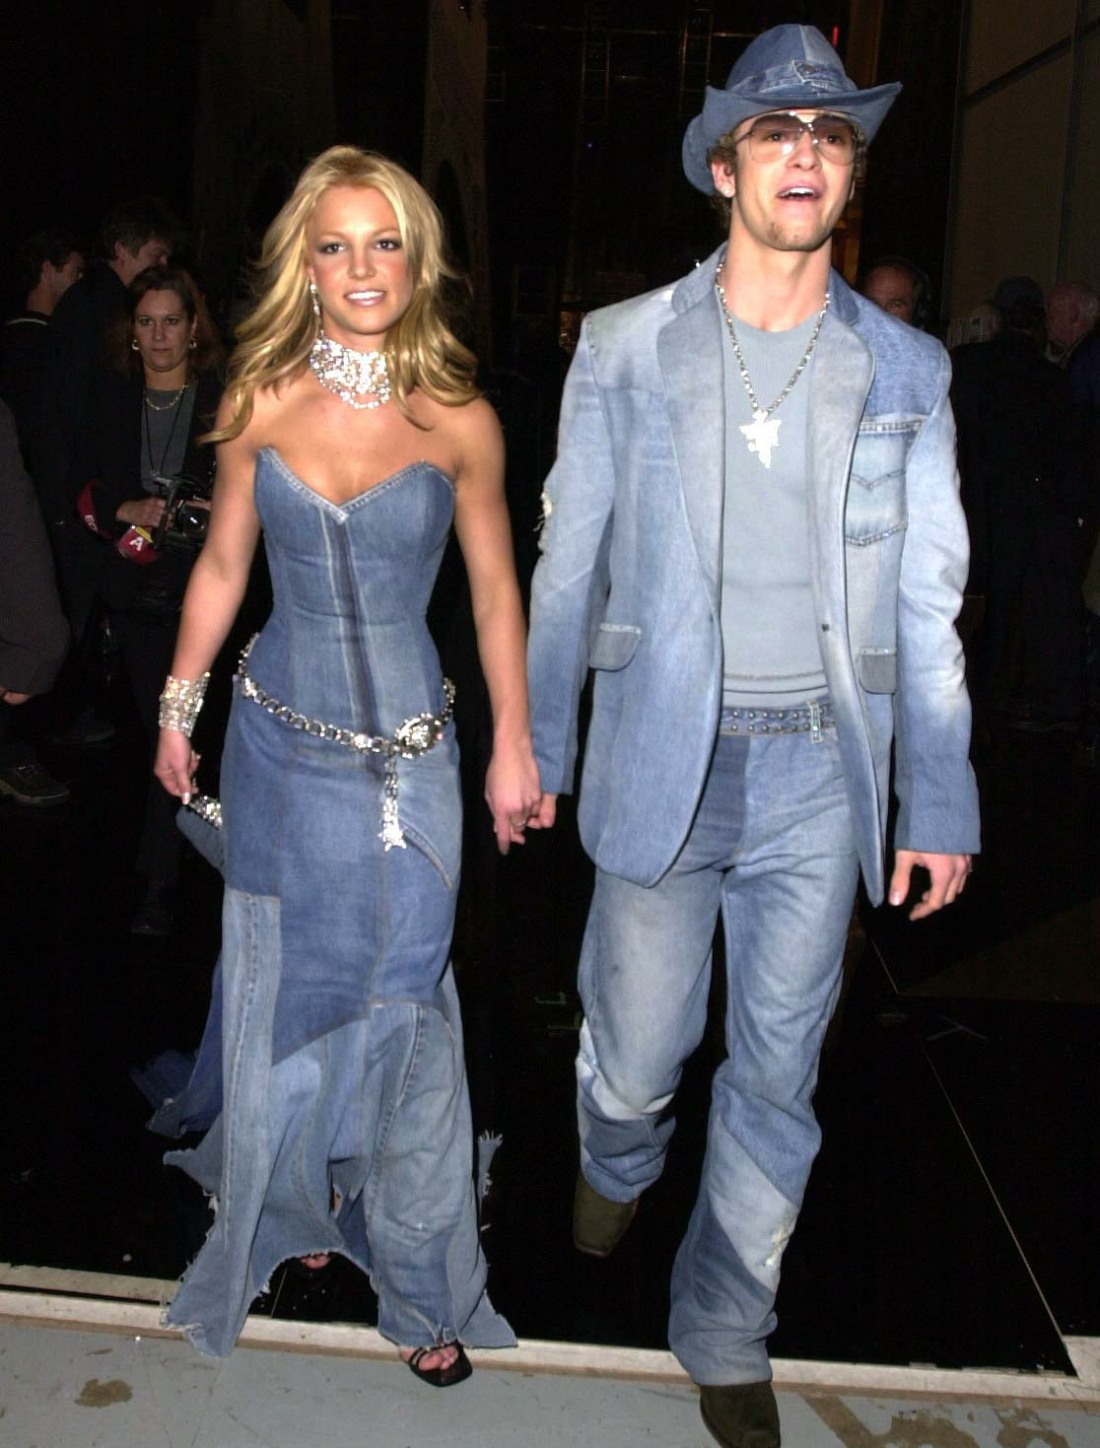 , 2001 britney spears and boyfriend justin timberlake at the 28th American Music Awards at the Shrine Auditorium in Los Angeles, CA  1/8/2001 URW/